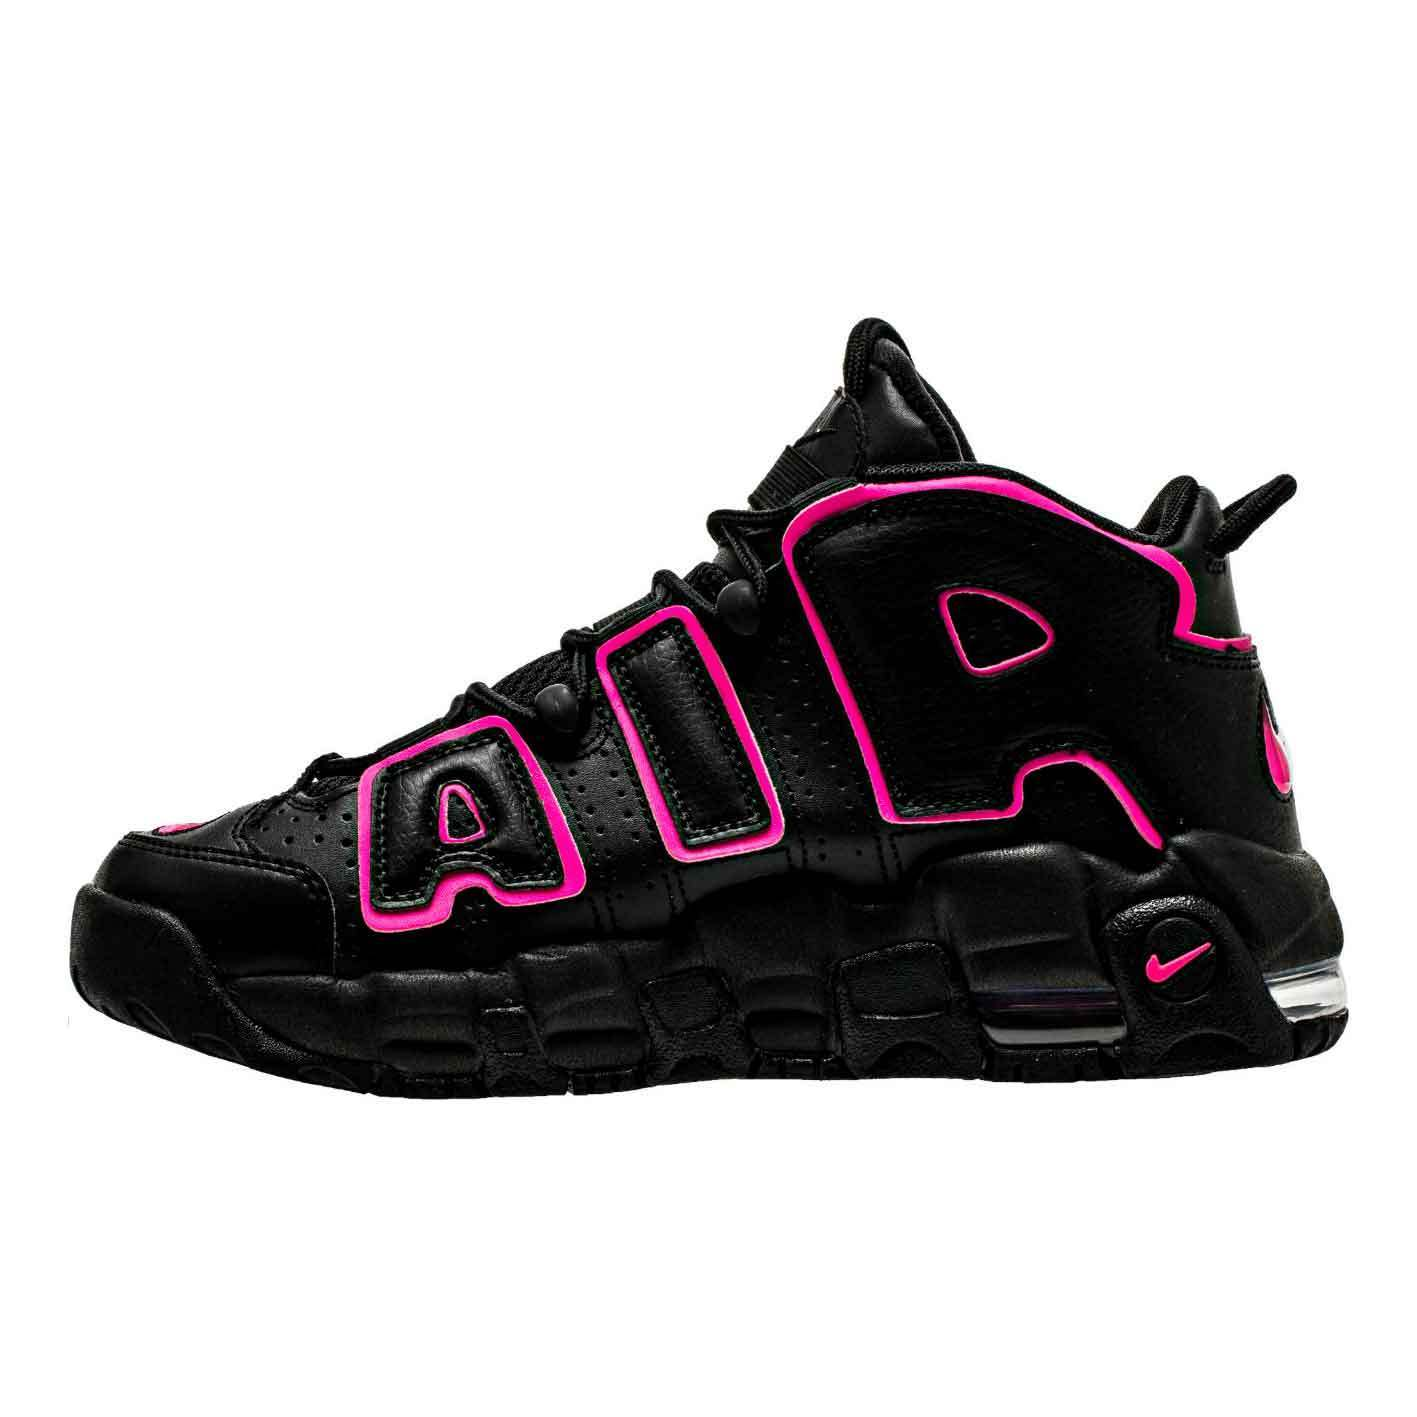 NIKE AIR MORE UPTEMPO ブラック ピンク キッズ レディース